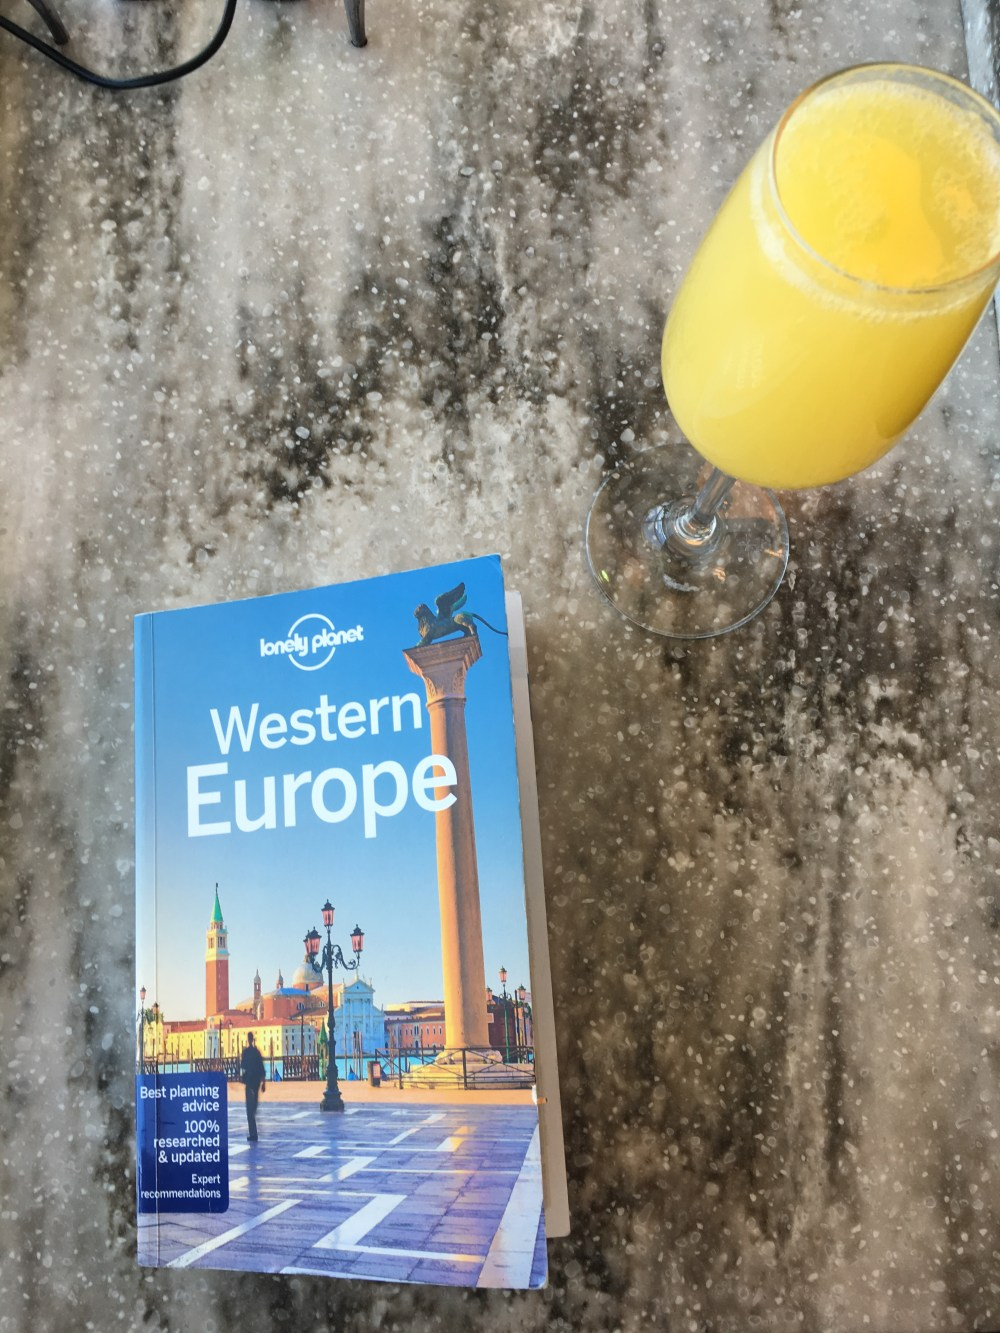 Photo of a Lonely Planet Guidebook cover and a glass of orange juice.